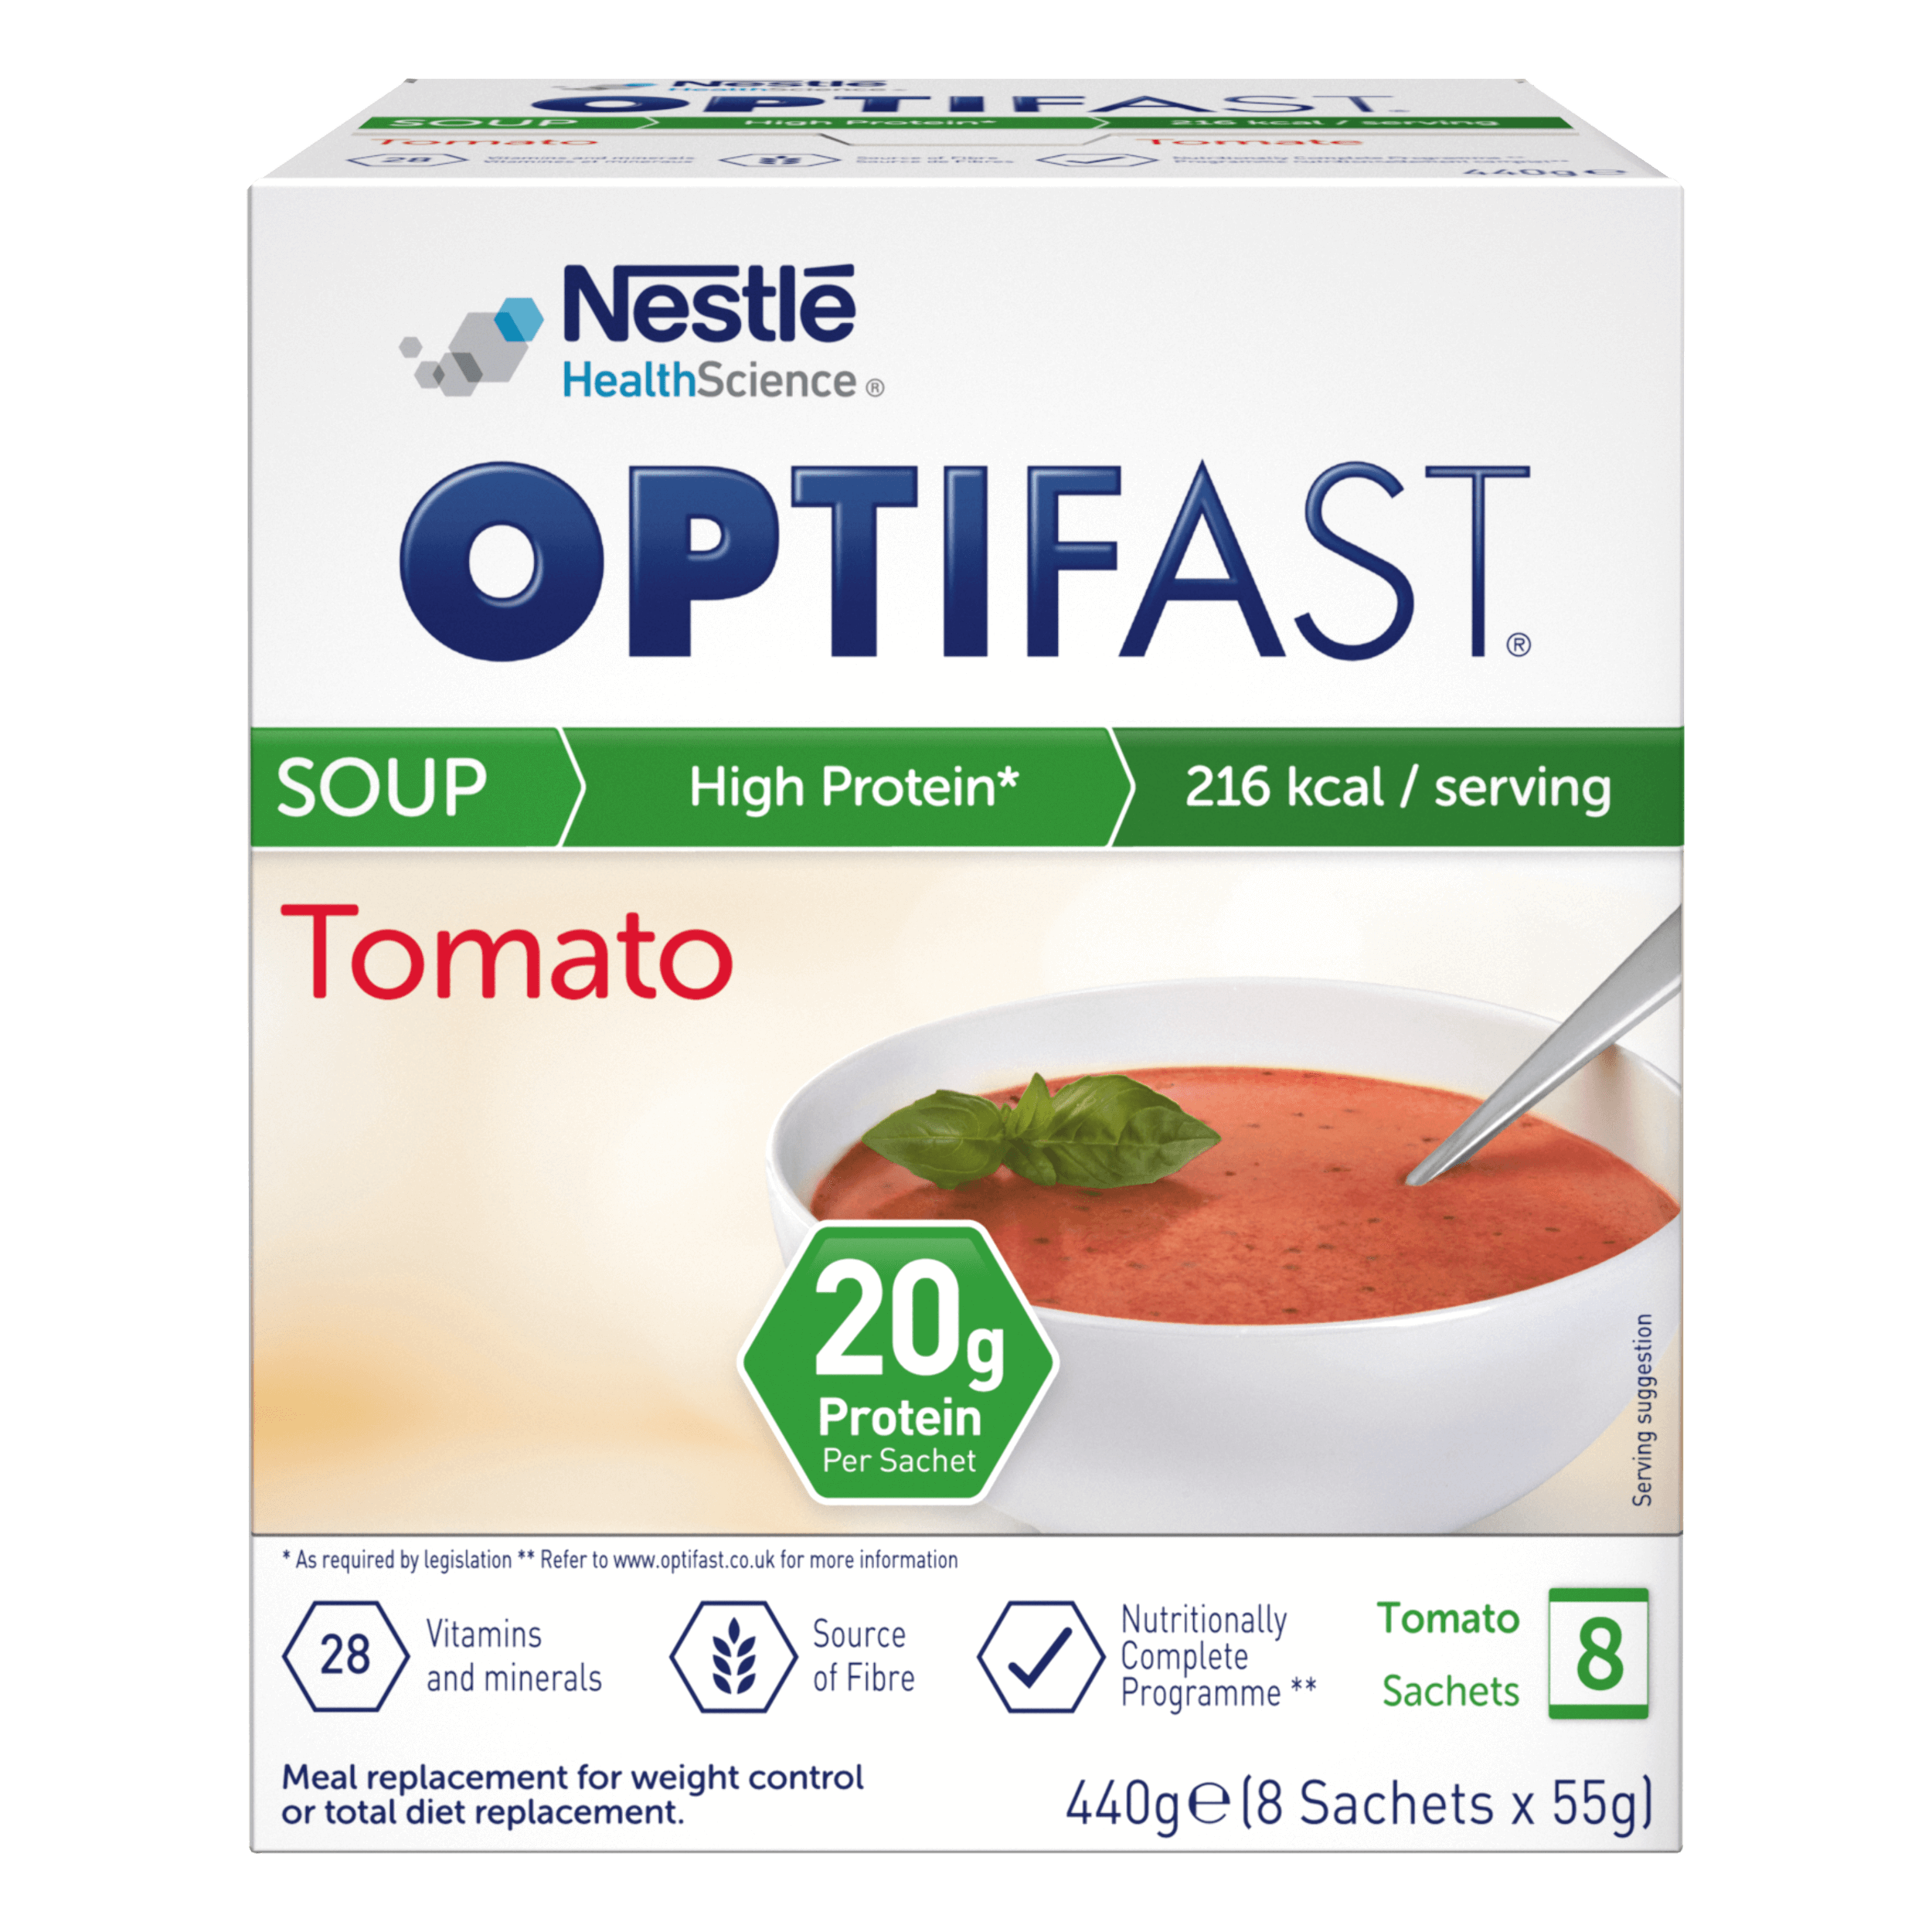 Image of the tomato flavour OPTIFAST soup